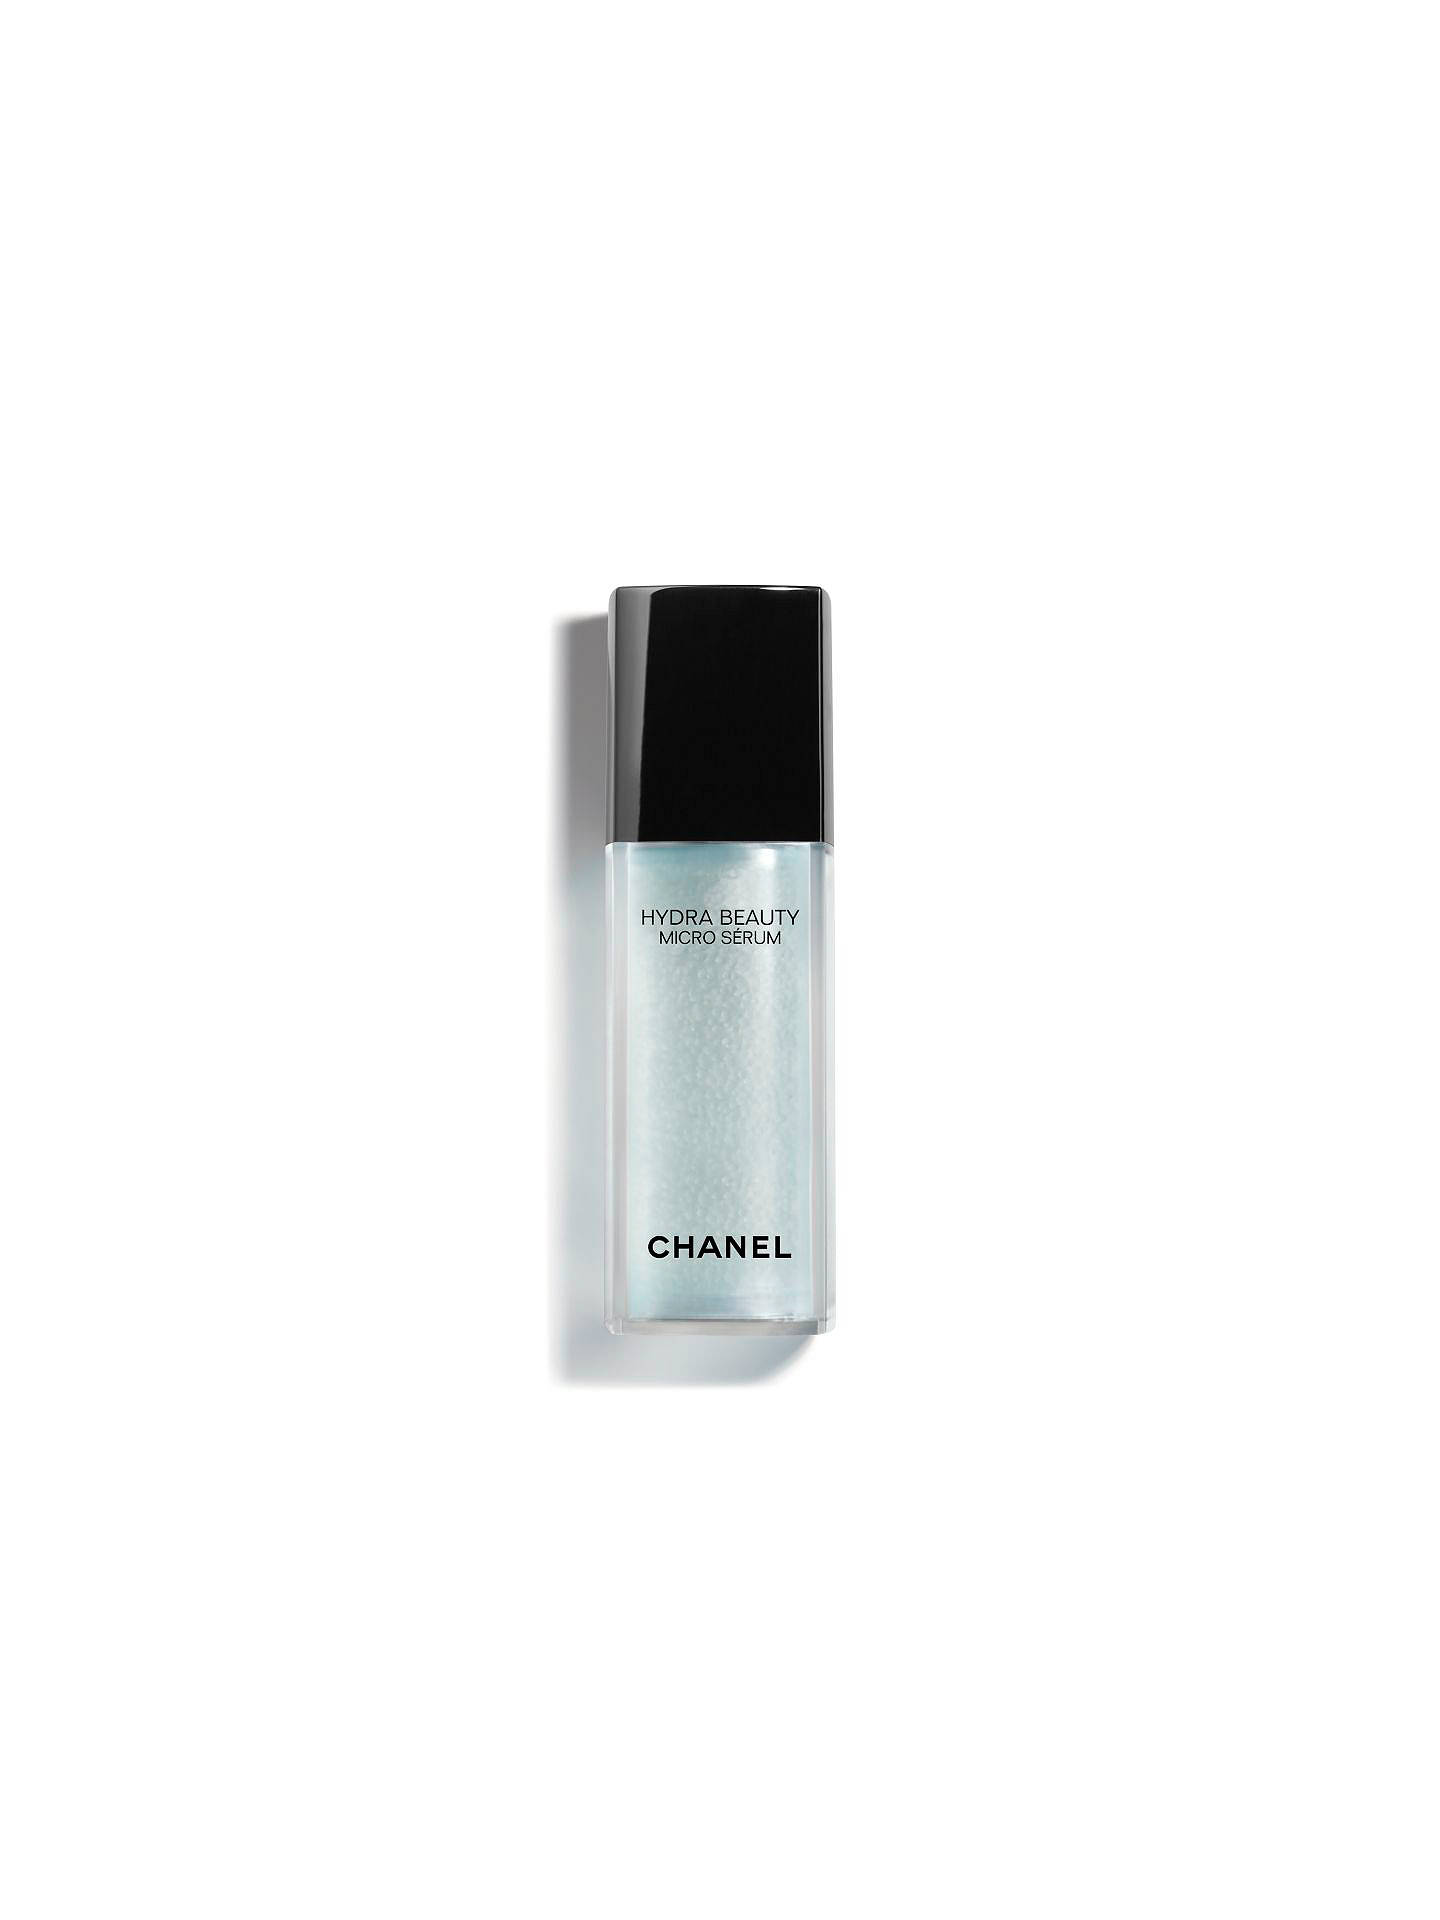 Buy CHANEL Hydra Beauty Micro Sérum Intense Replenishing Hydration, 30ml Online at johnlewis.com